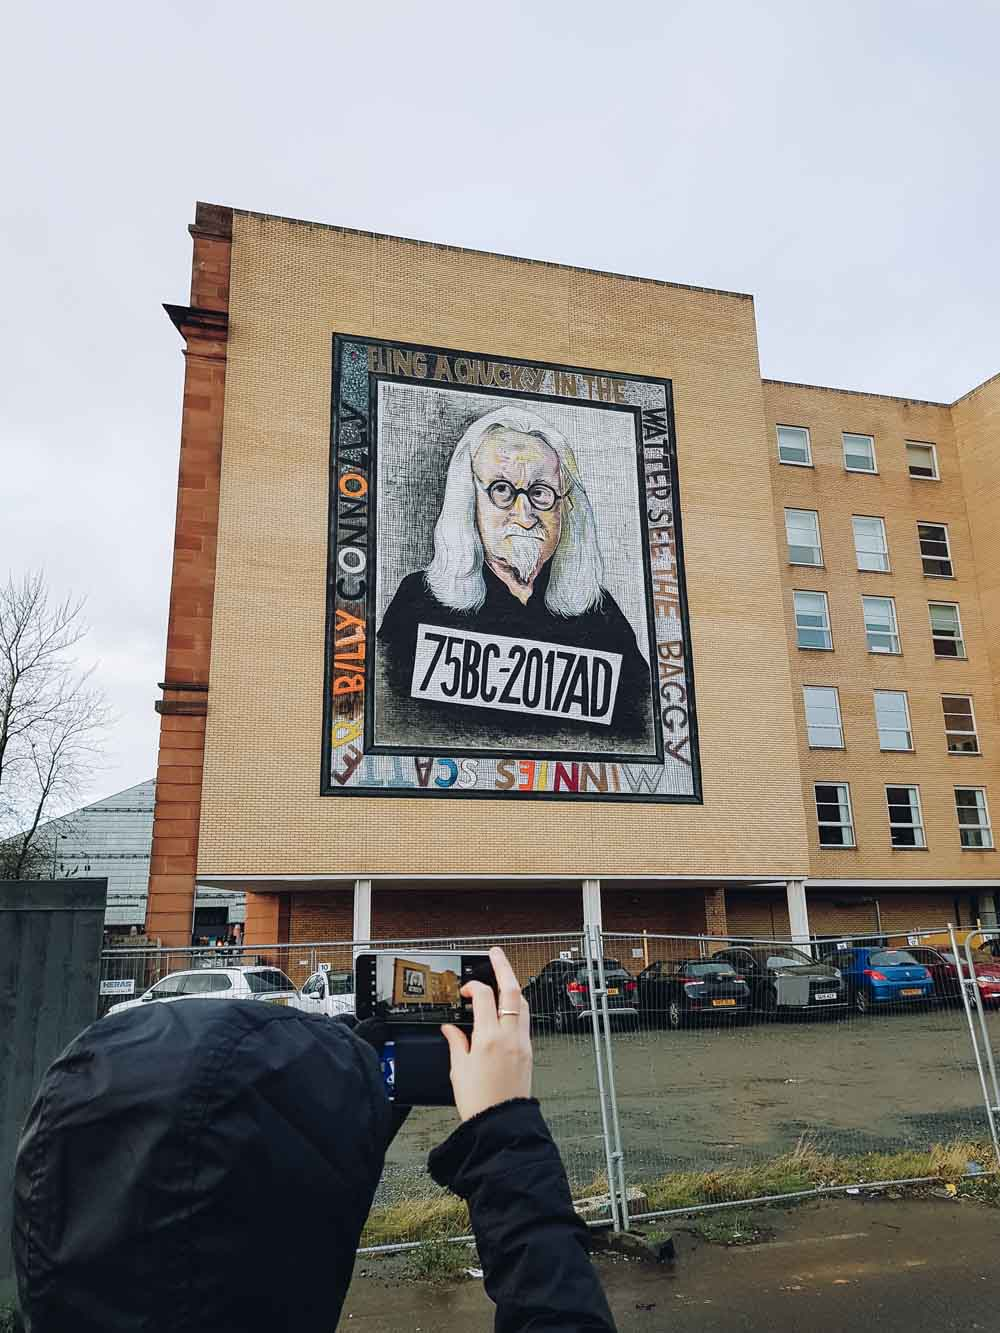 Billy Connolly, Osborne Street, Glasgow - Map of Joy